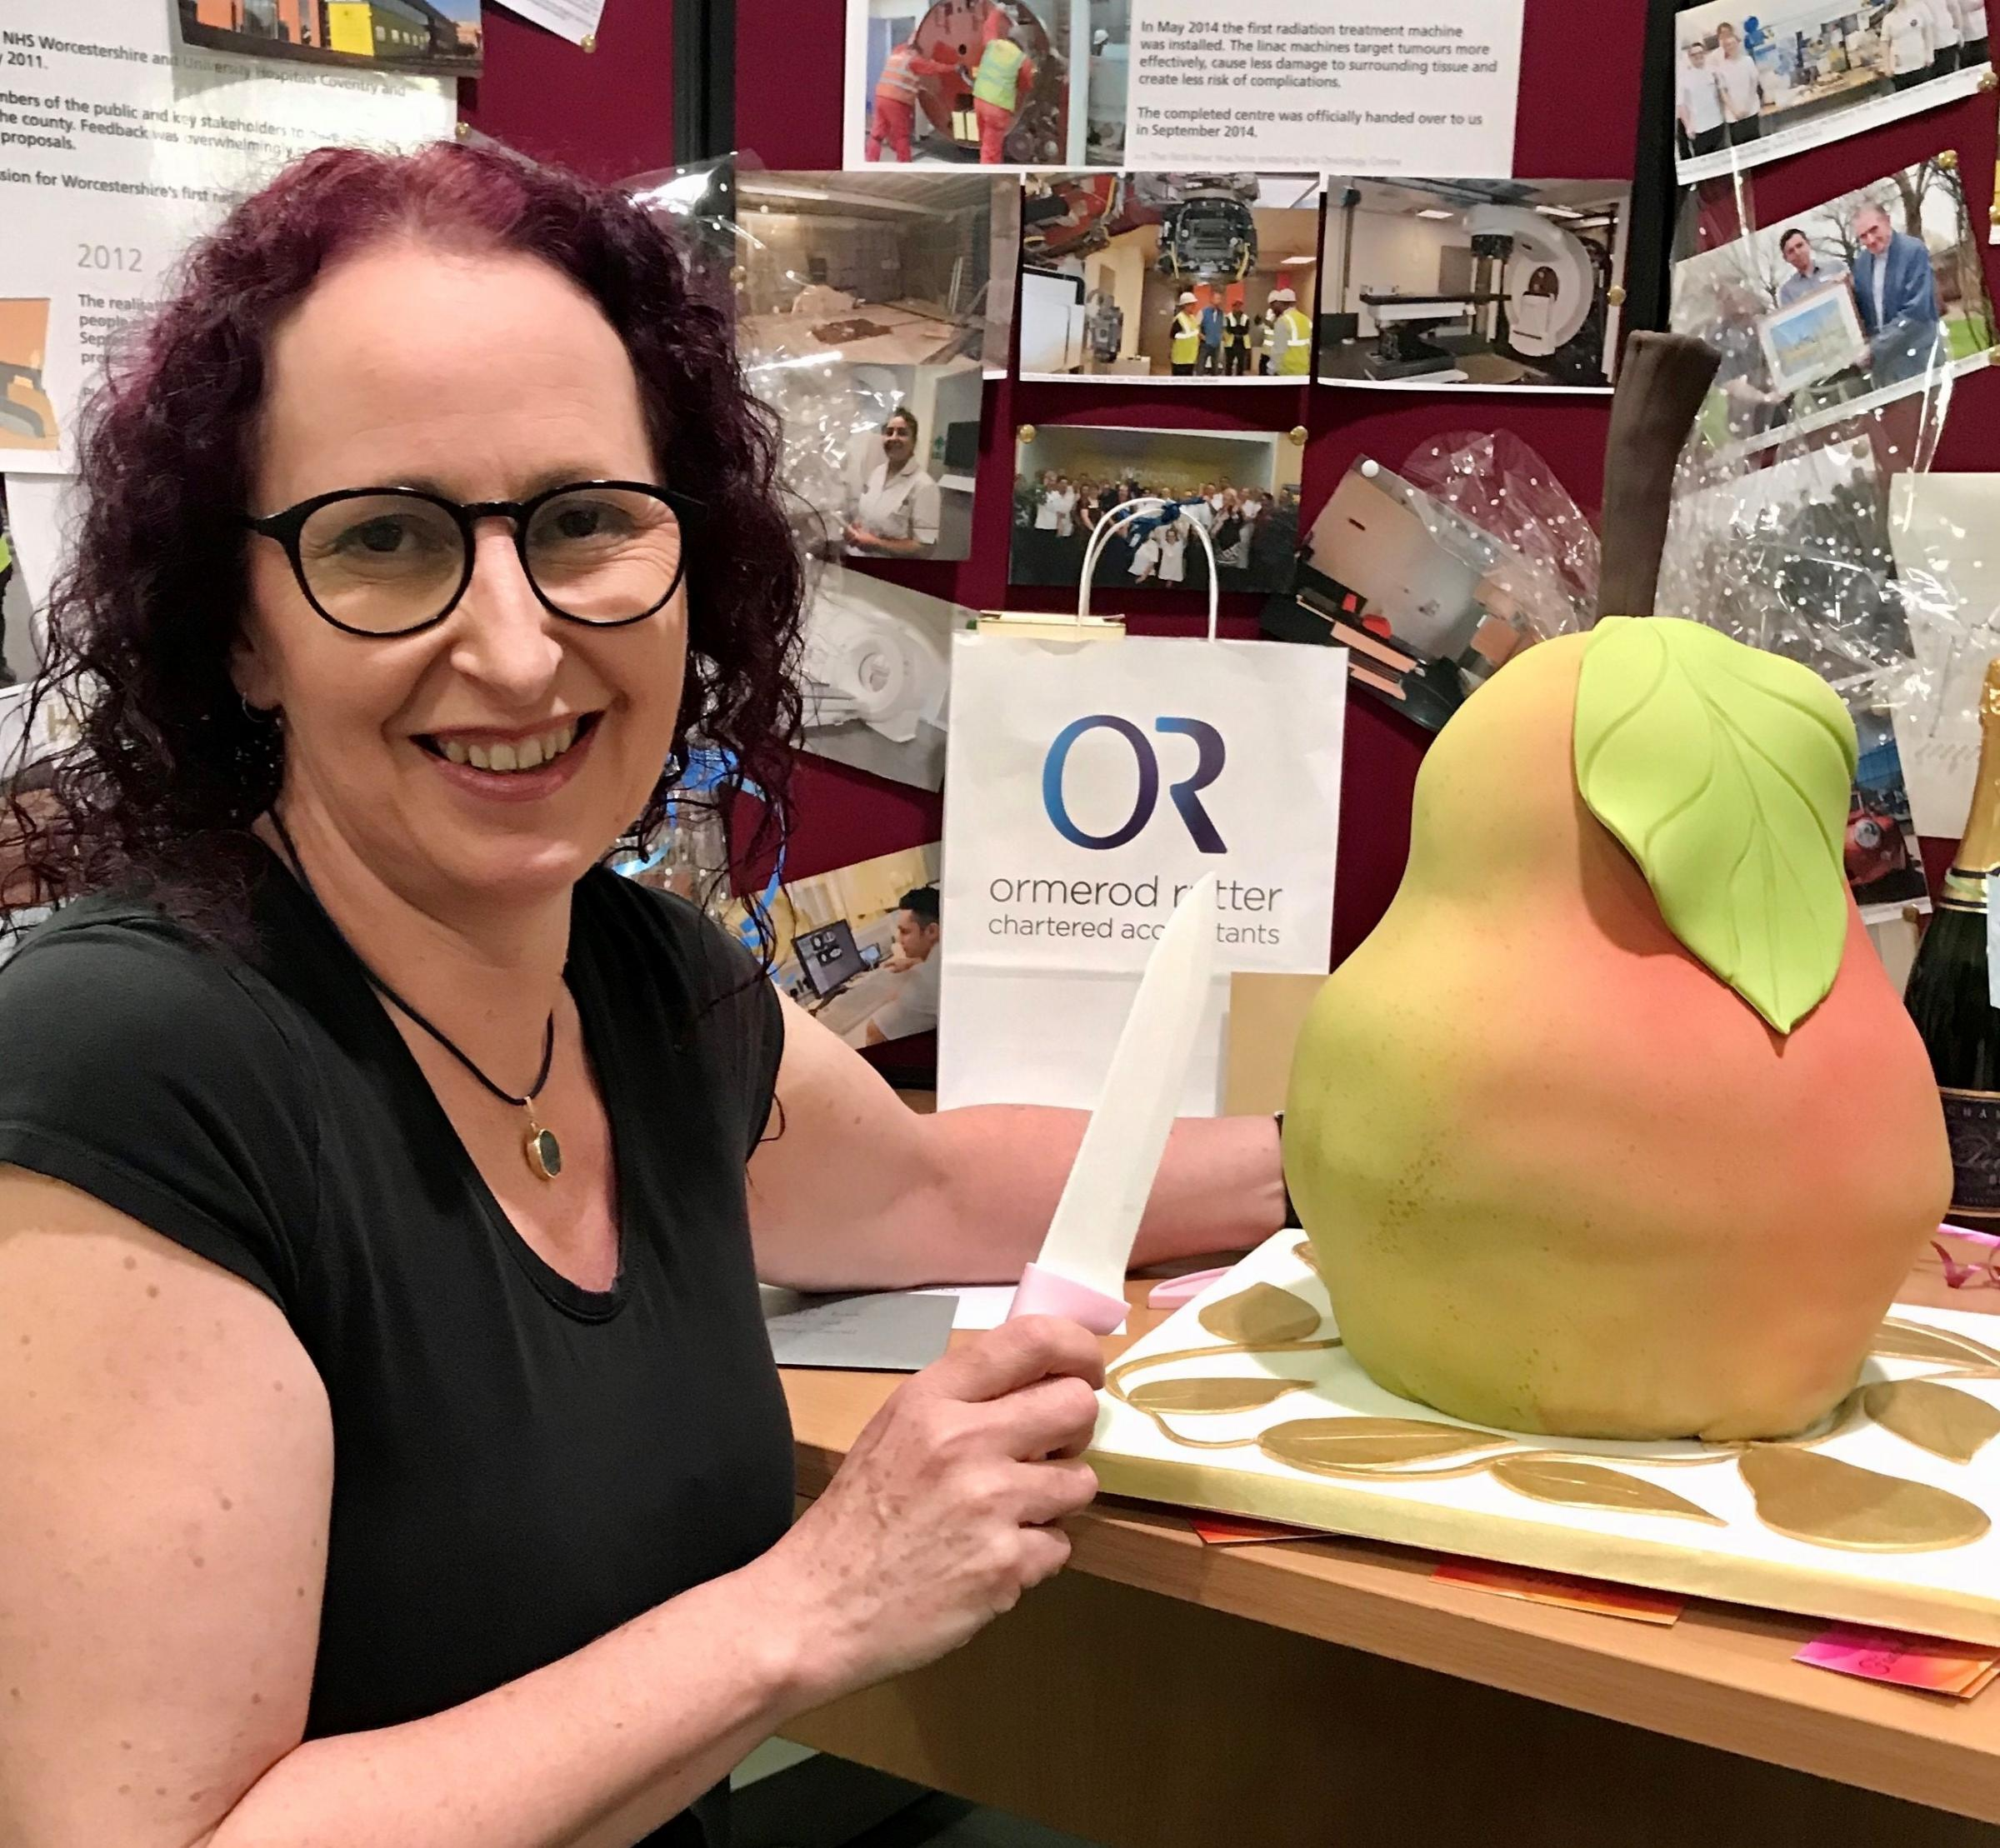 Malvern cancer patient bakes stunning cake to thank Worcestershire Royal oncology staff